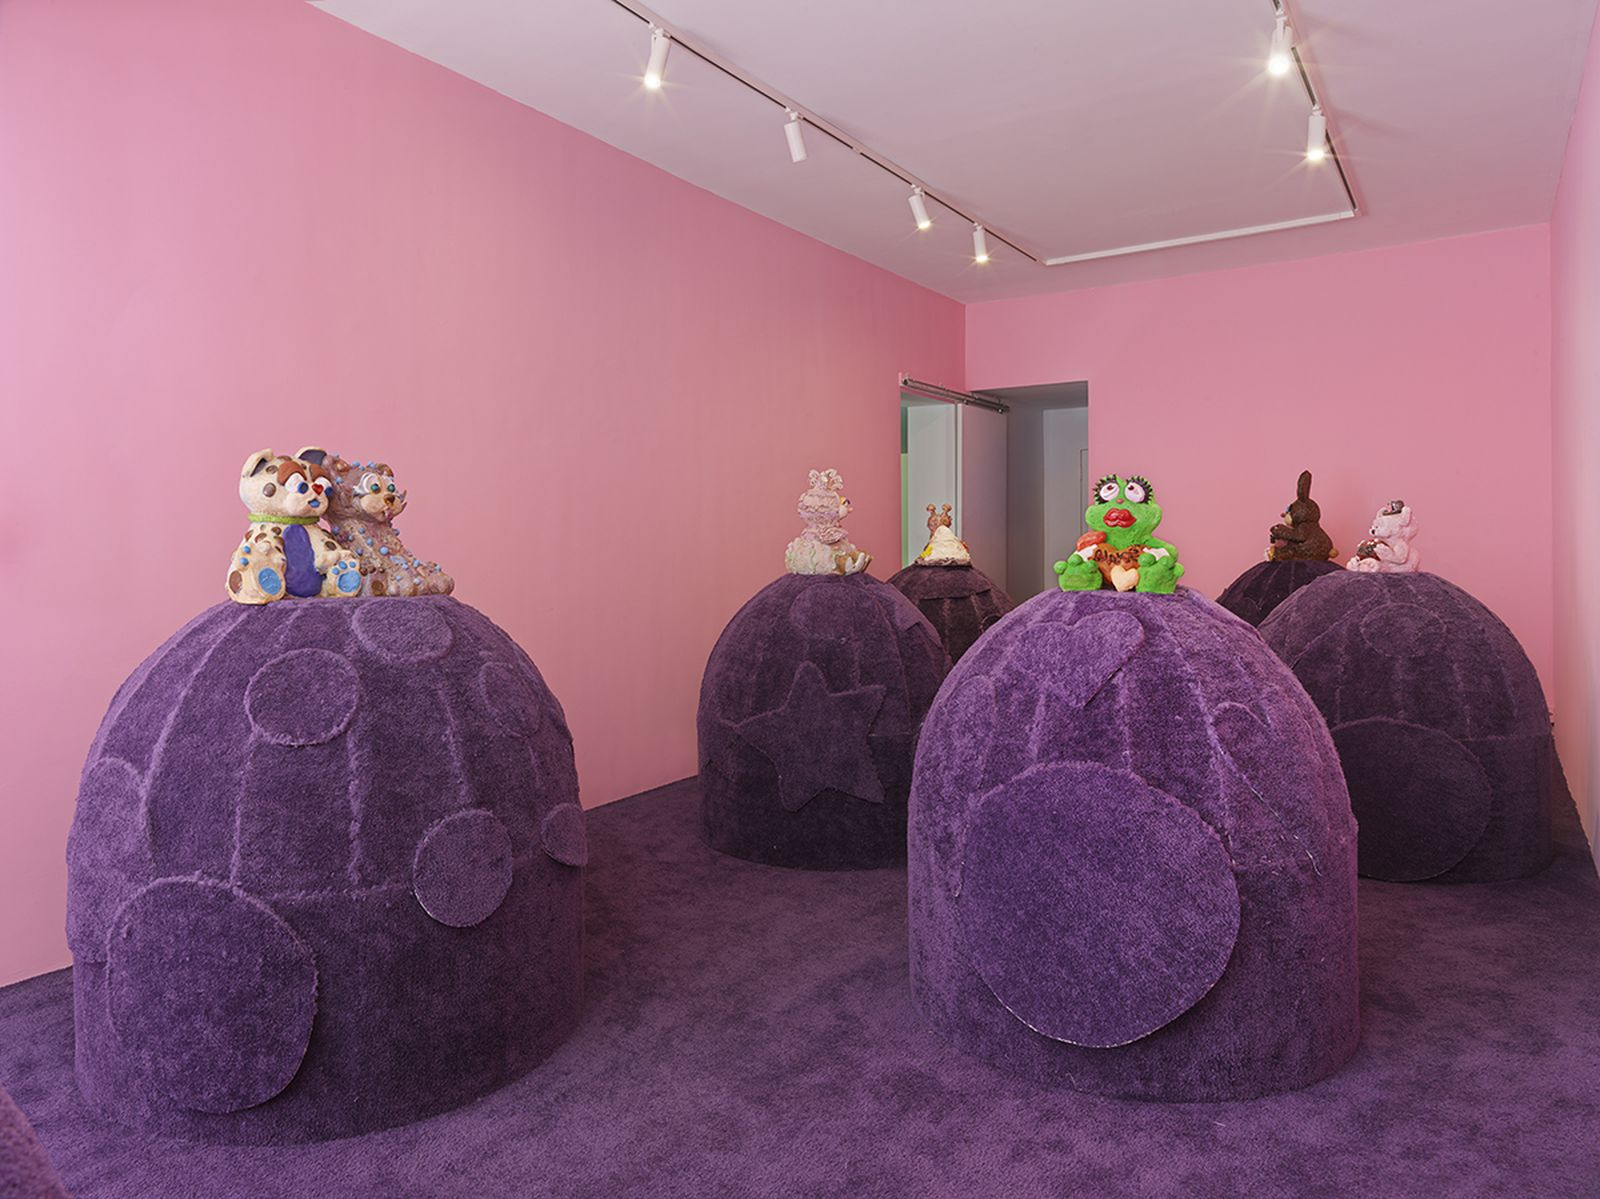 Installation views, Alake Shilling: The Hippest Trip in America - By Land, Air and Sea  •  2021